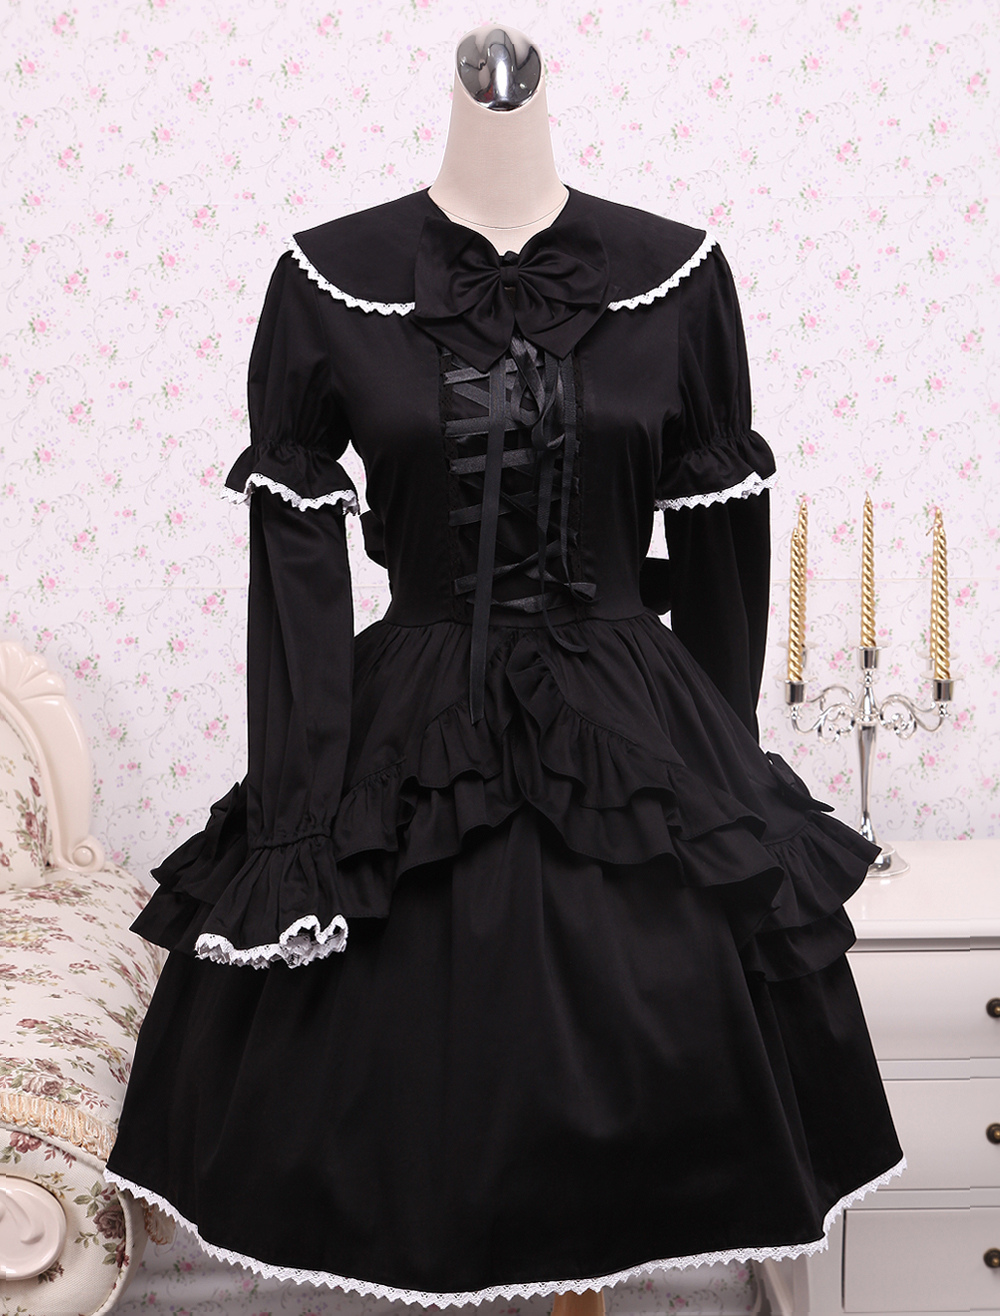 Cotton Black Loltia OP Dress Long Sleeves Lace Up Layered Ruffles Bow